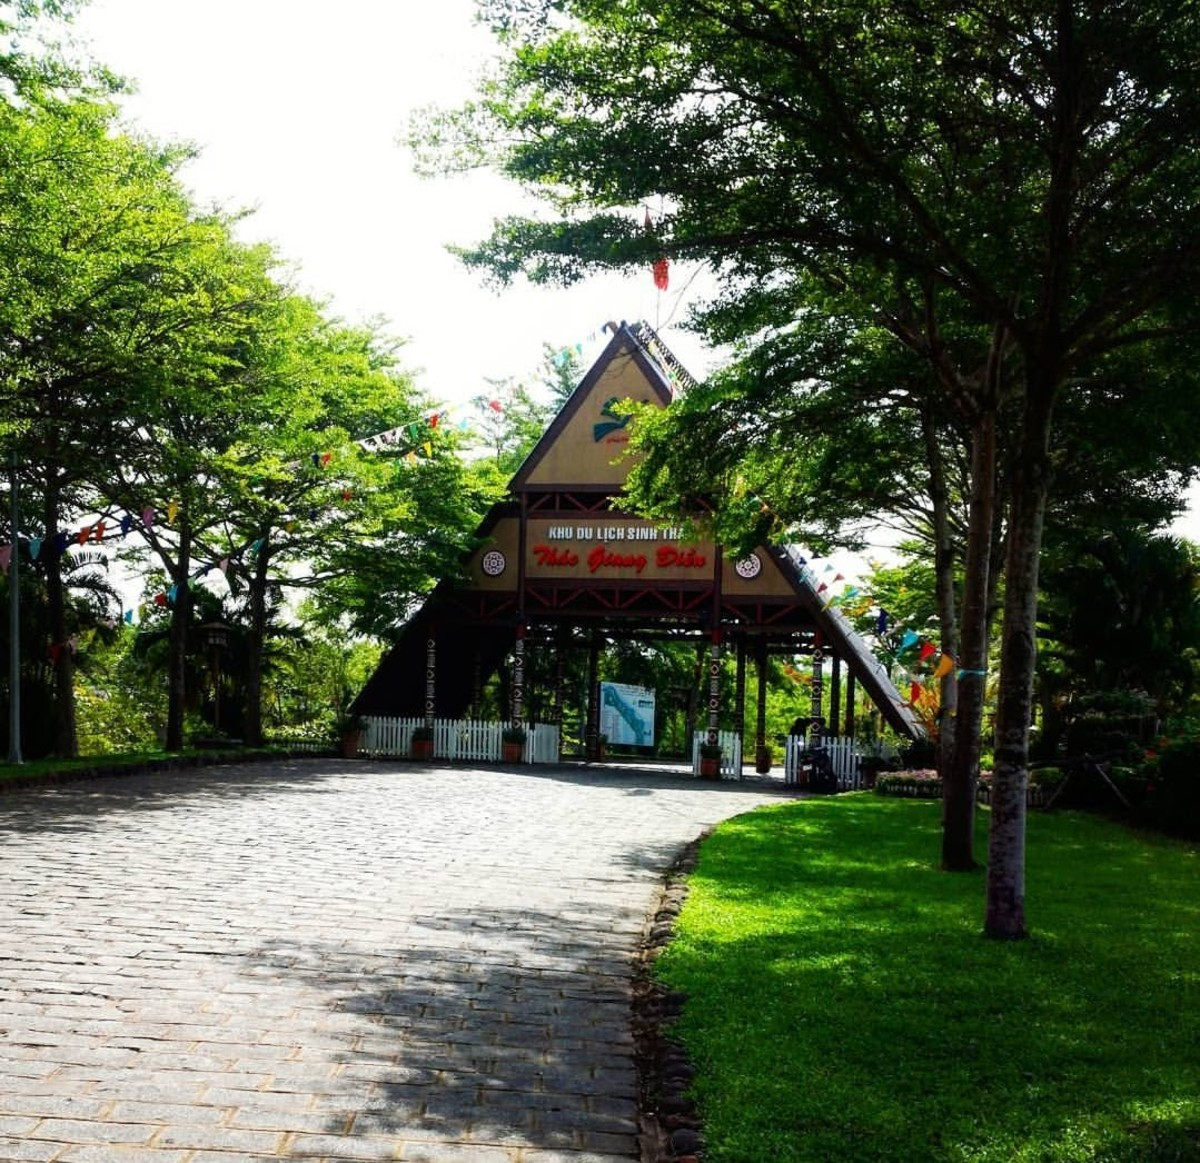 A huge gate that copies the style of an ethnical house impresses visitors as they arrive at the park